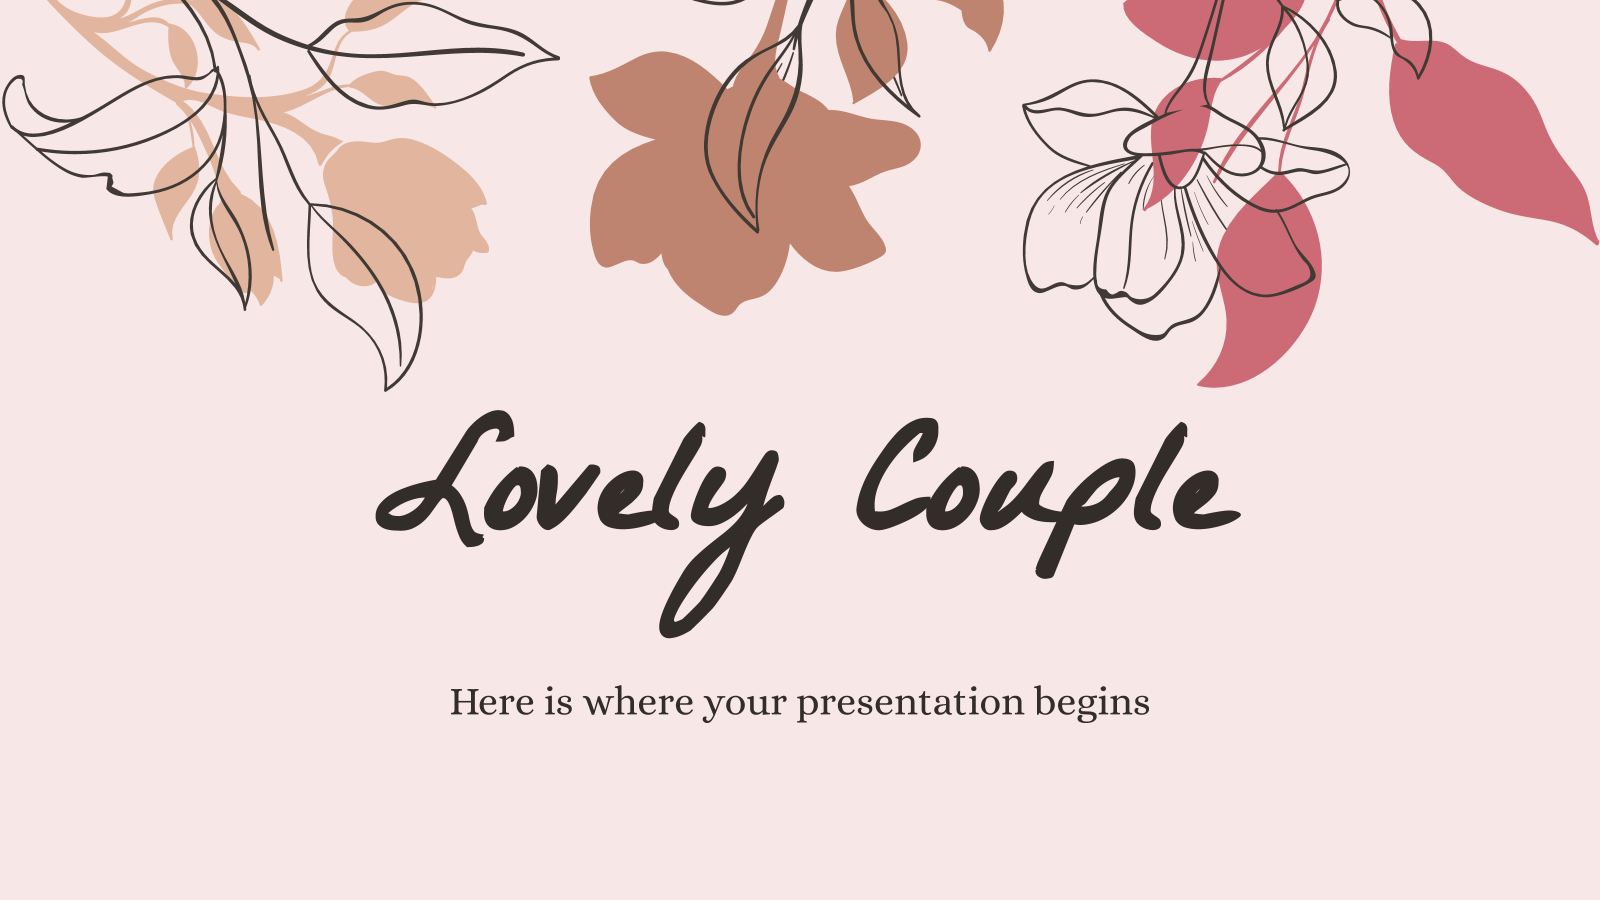 Lovely Couple presentation template